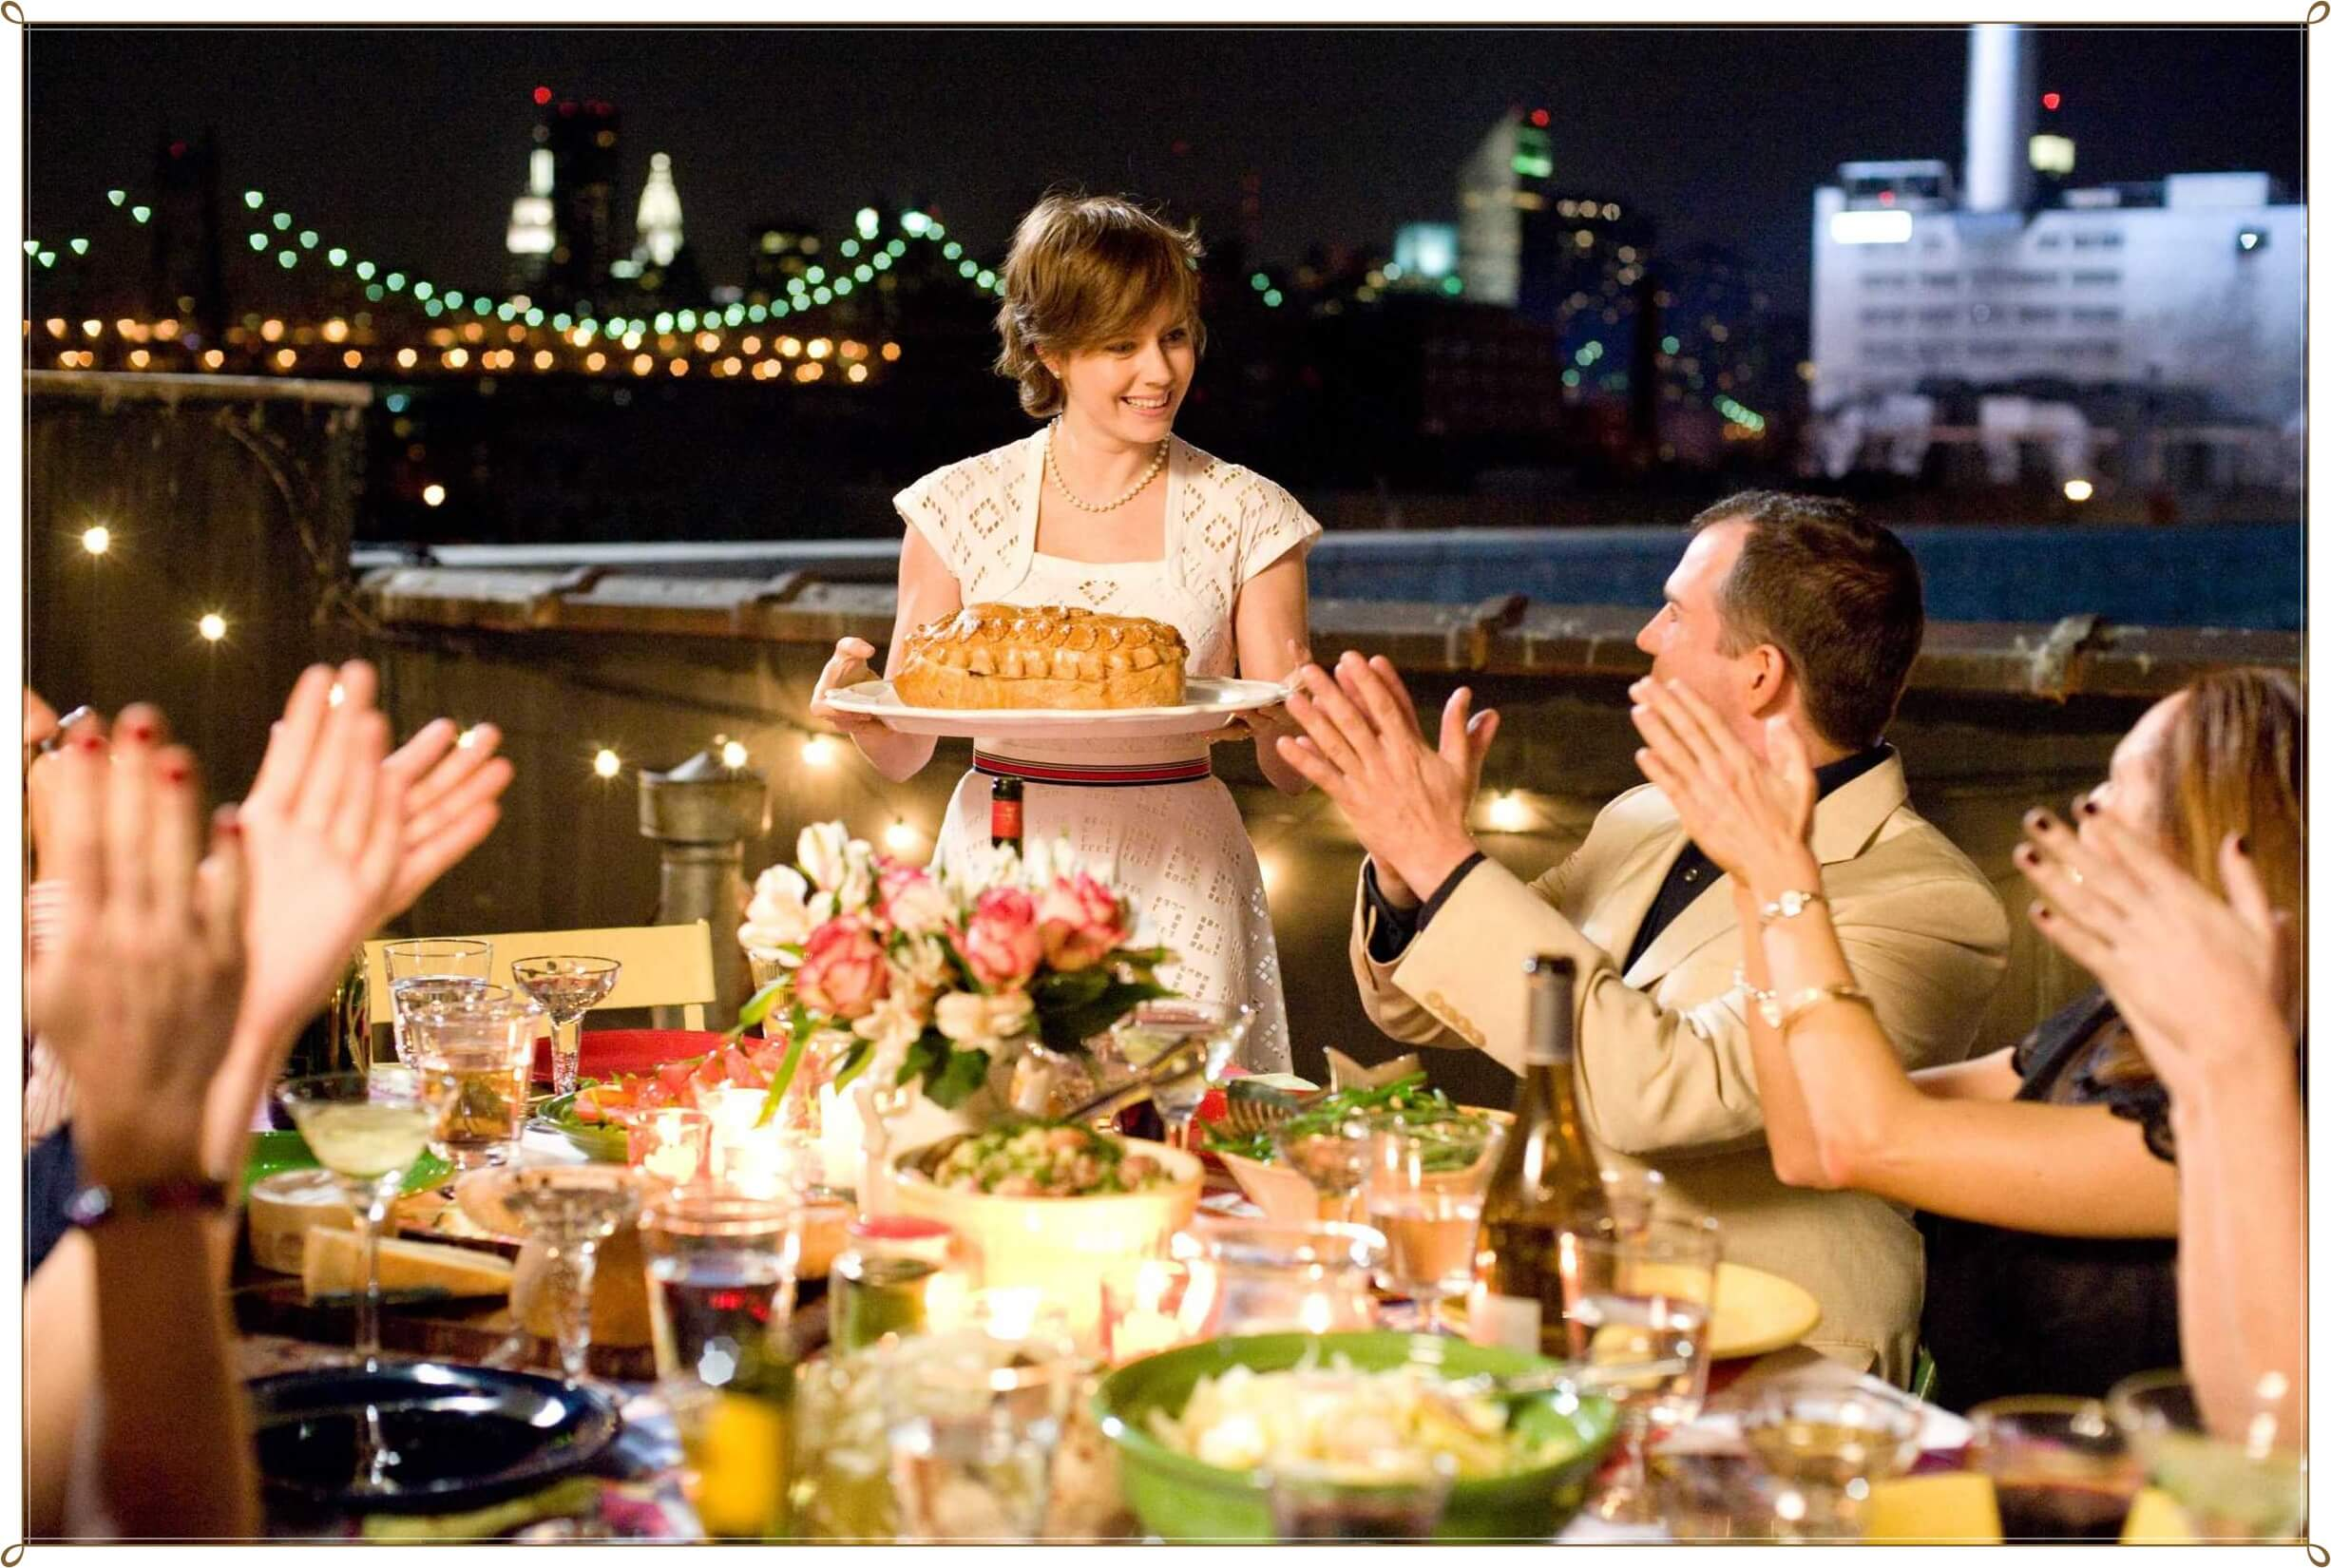 Hosting A Dinner Party how to host a fabulous, high class dinner party on a super, low